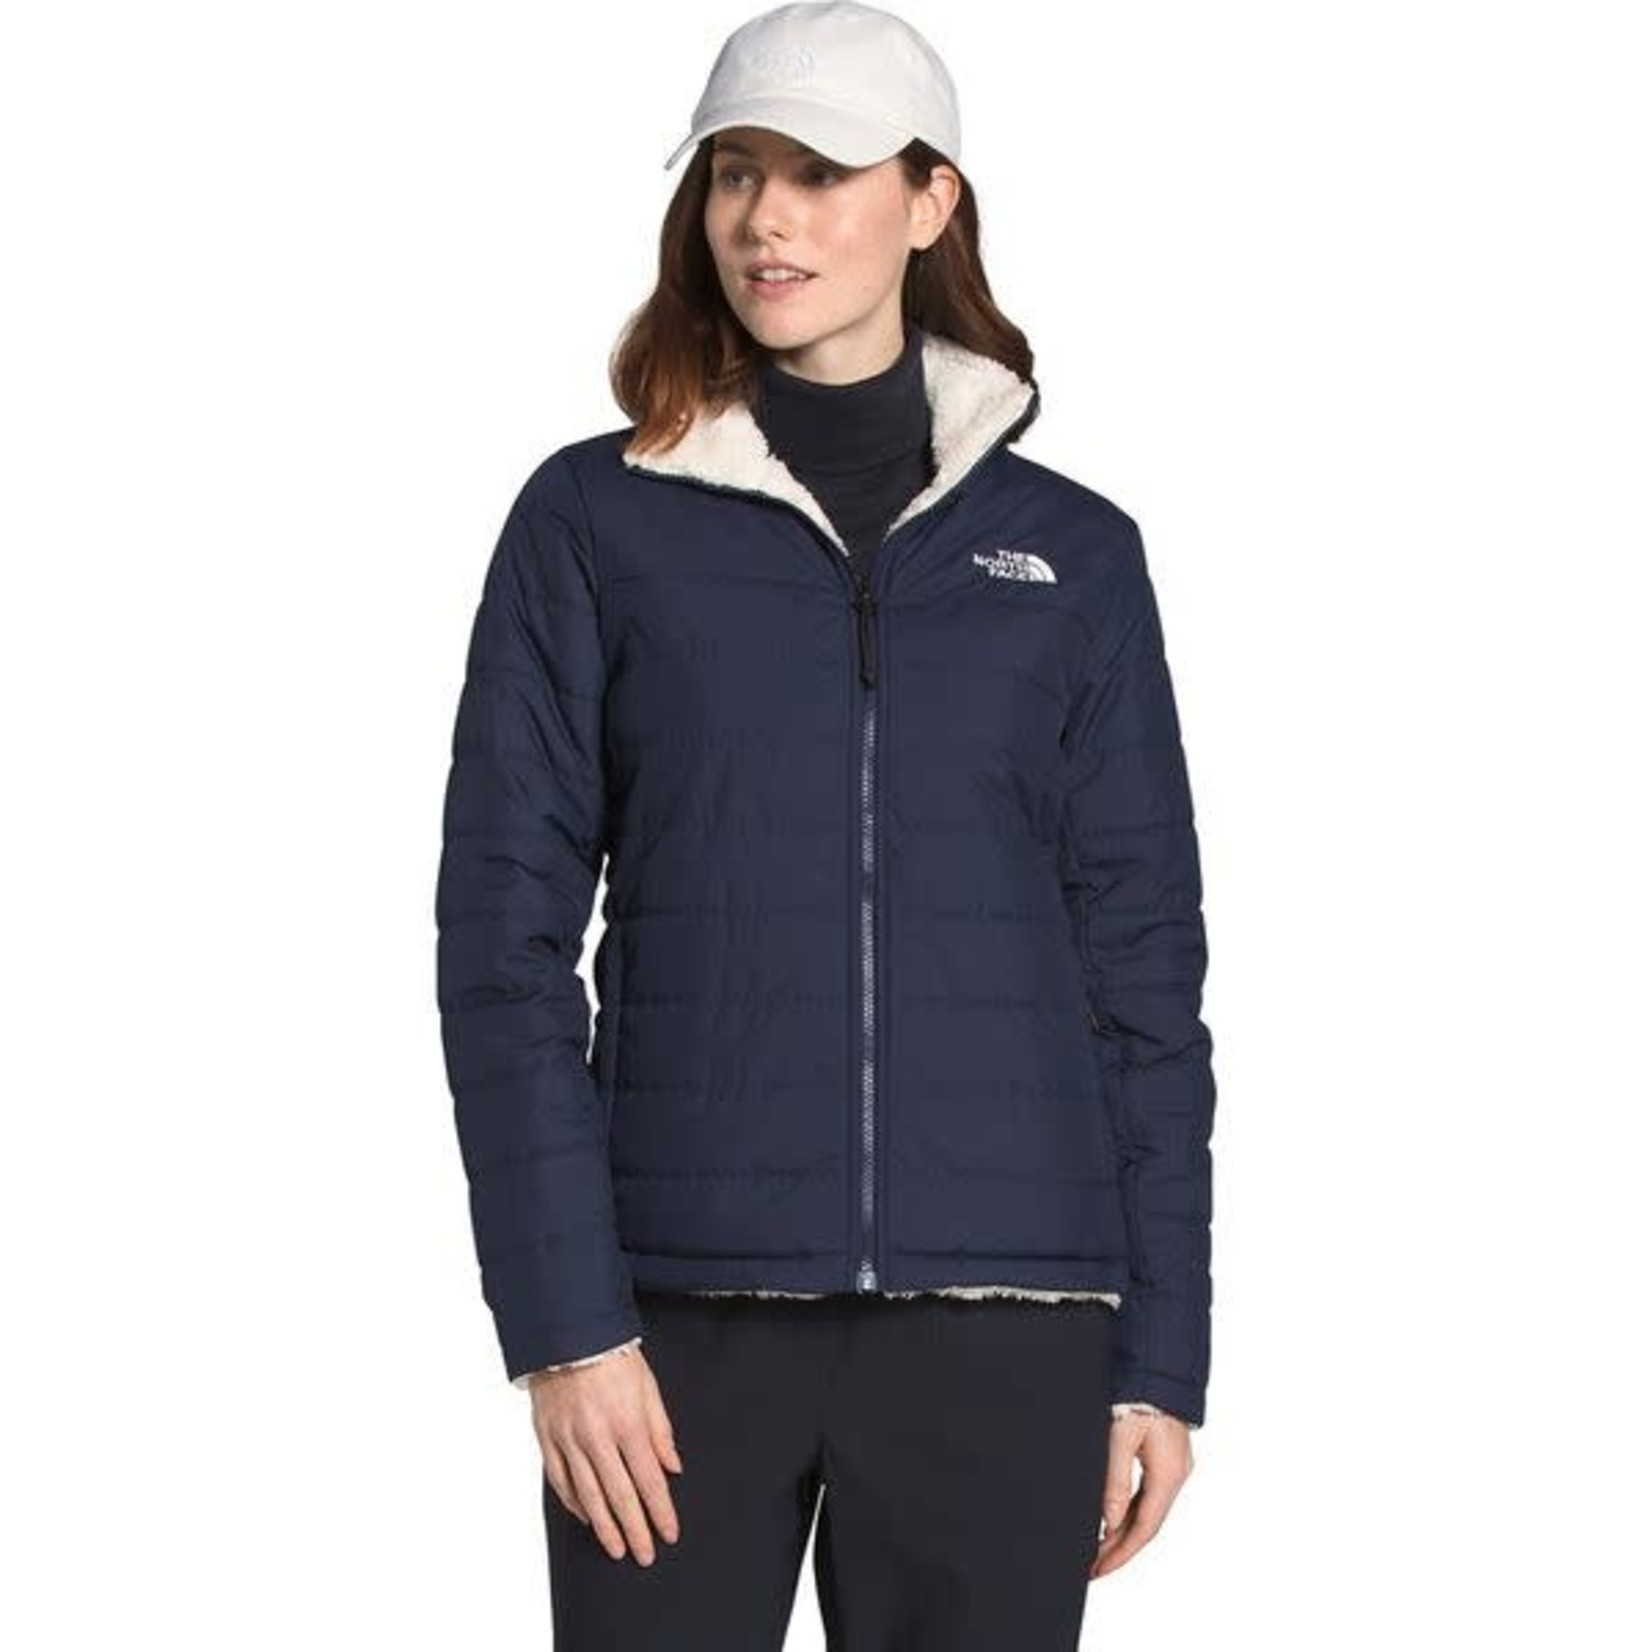 The North Face The North Face Jacket, Mossbud Insulated Reversible, Ladies